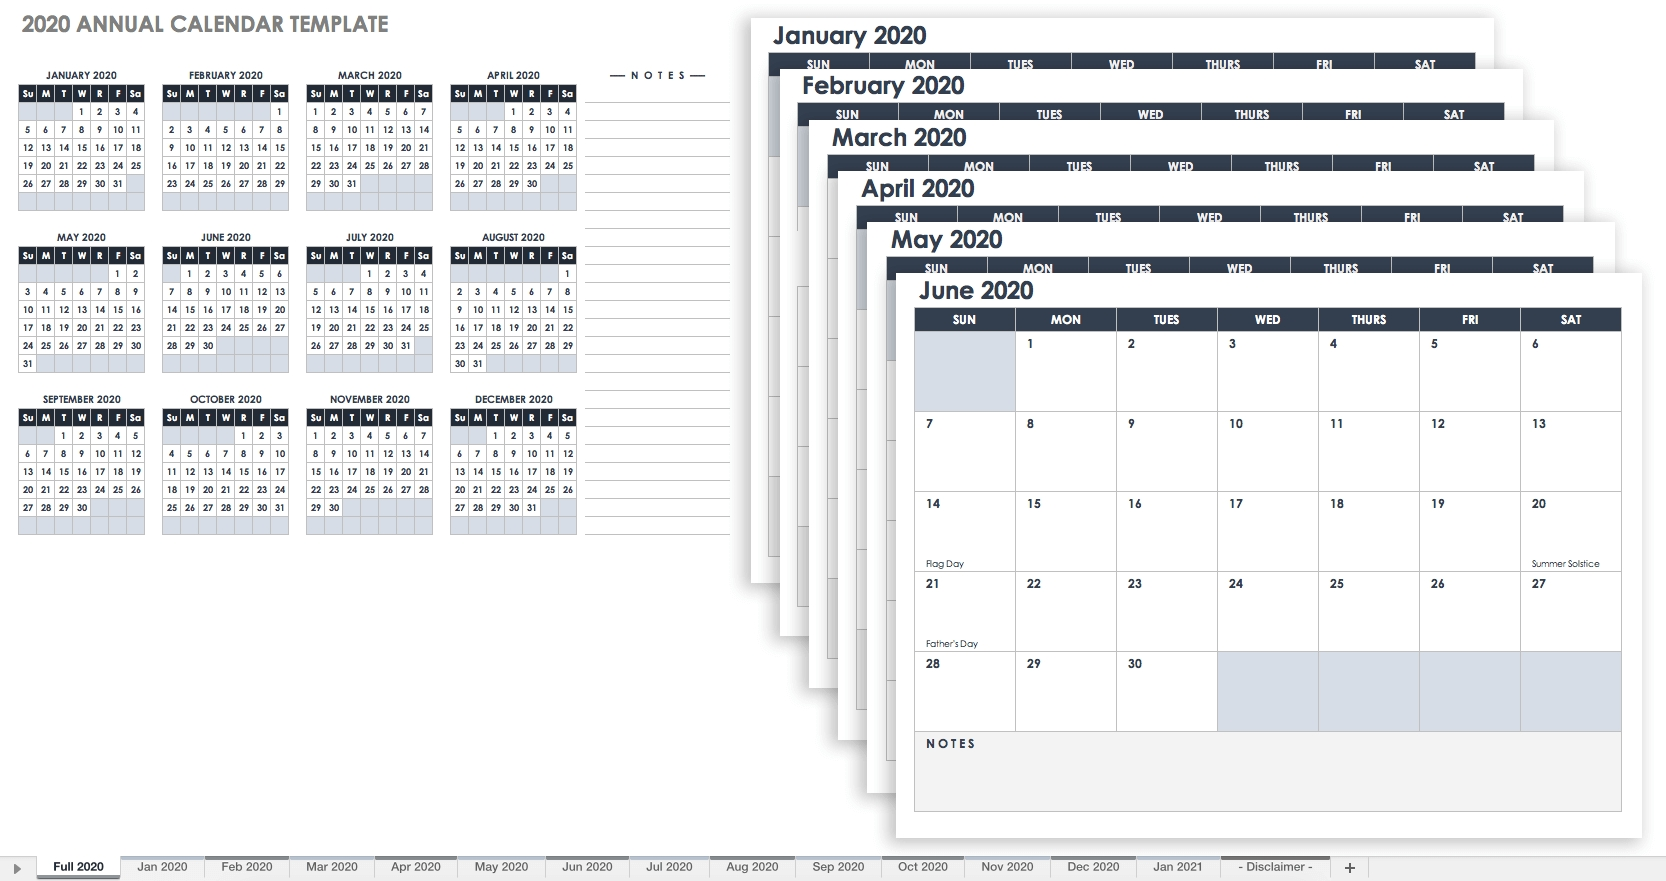 Free, Printable Excel Calendar Templates For 2019 & On | Smartsheet pertaining to Free Printable Calendars 2019-2020 To Edit